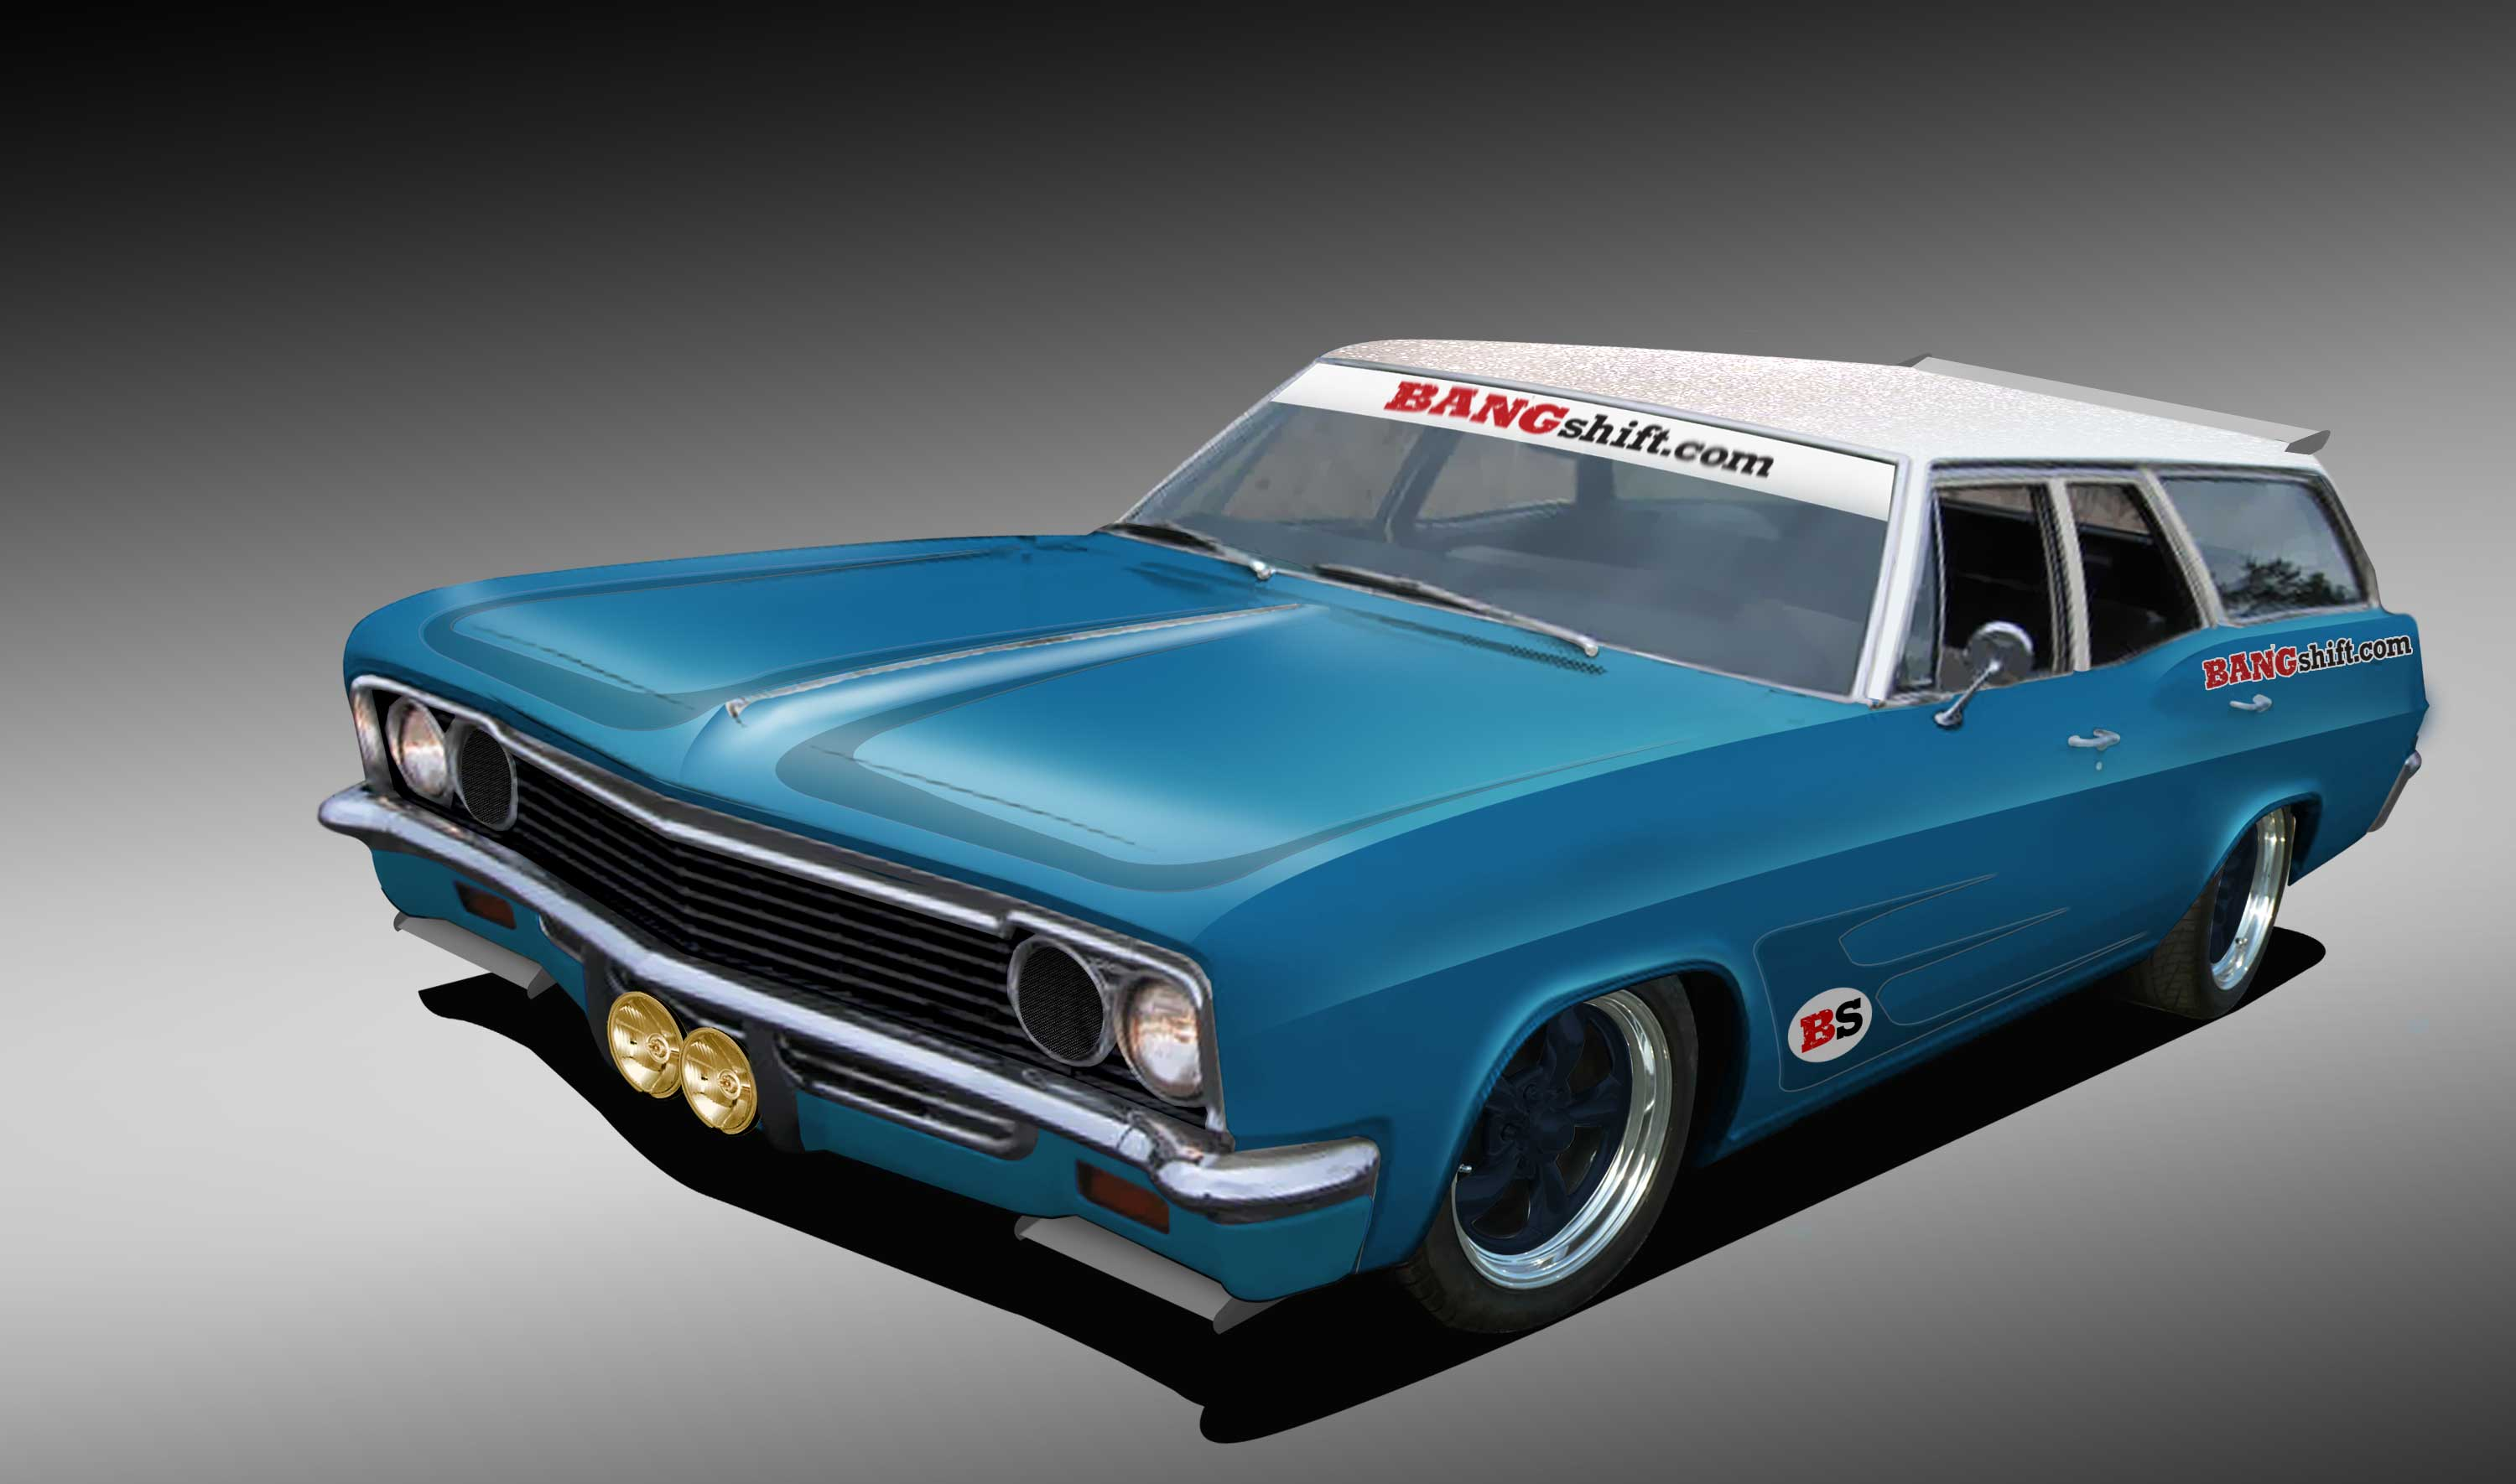 Introducing Wickeds Wagon Bangshifts Bmw Slaying 1966 Chevrolet Bel Air Conv Hot Rod Project